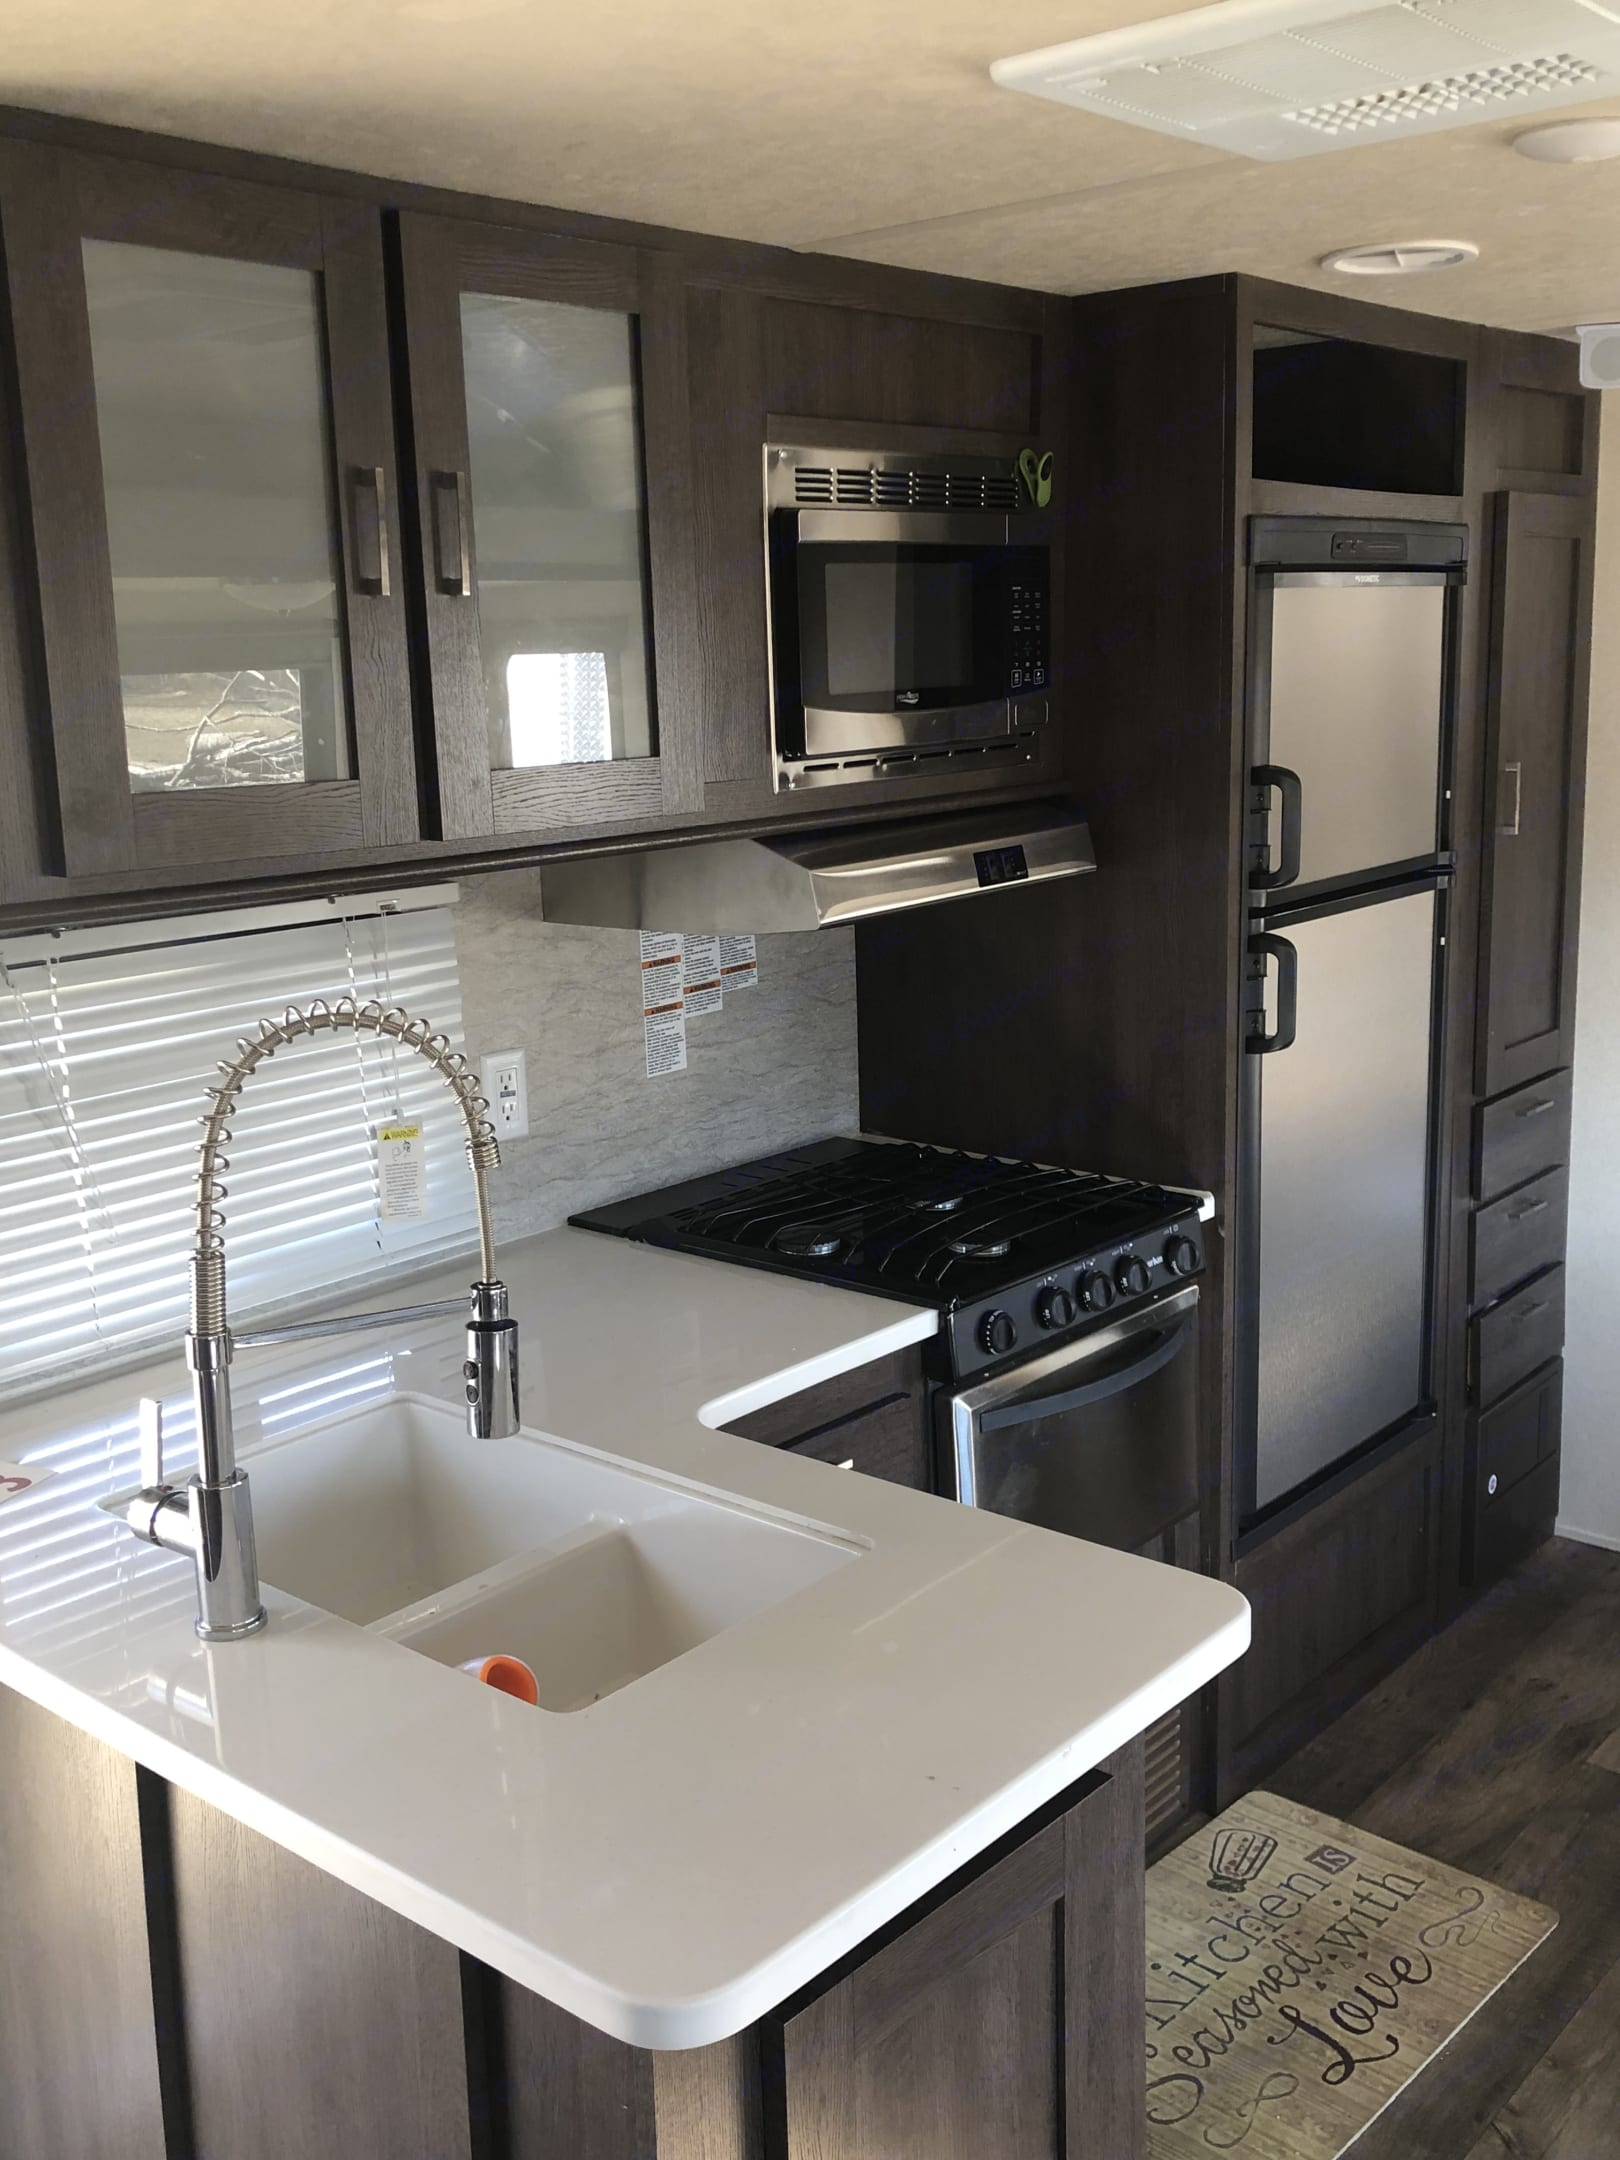 Kitchen with 3 range stove, sink, refrigerator and mircowave . Forest River Wildwood 2018